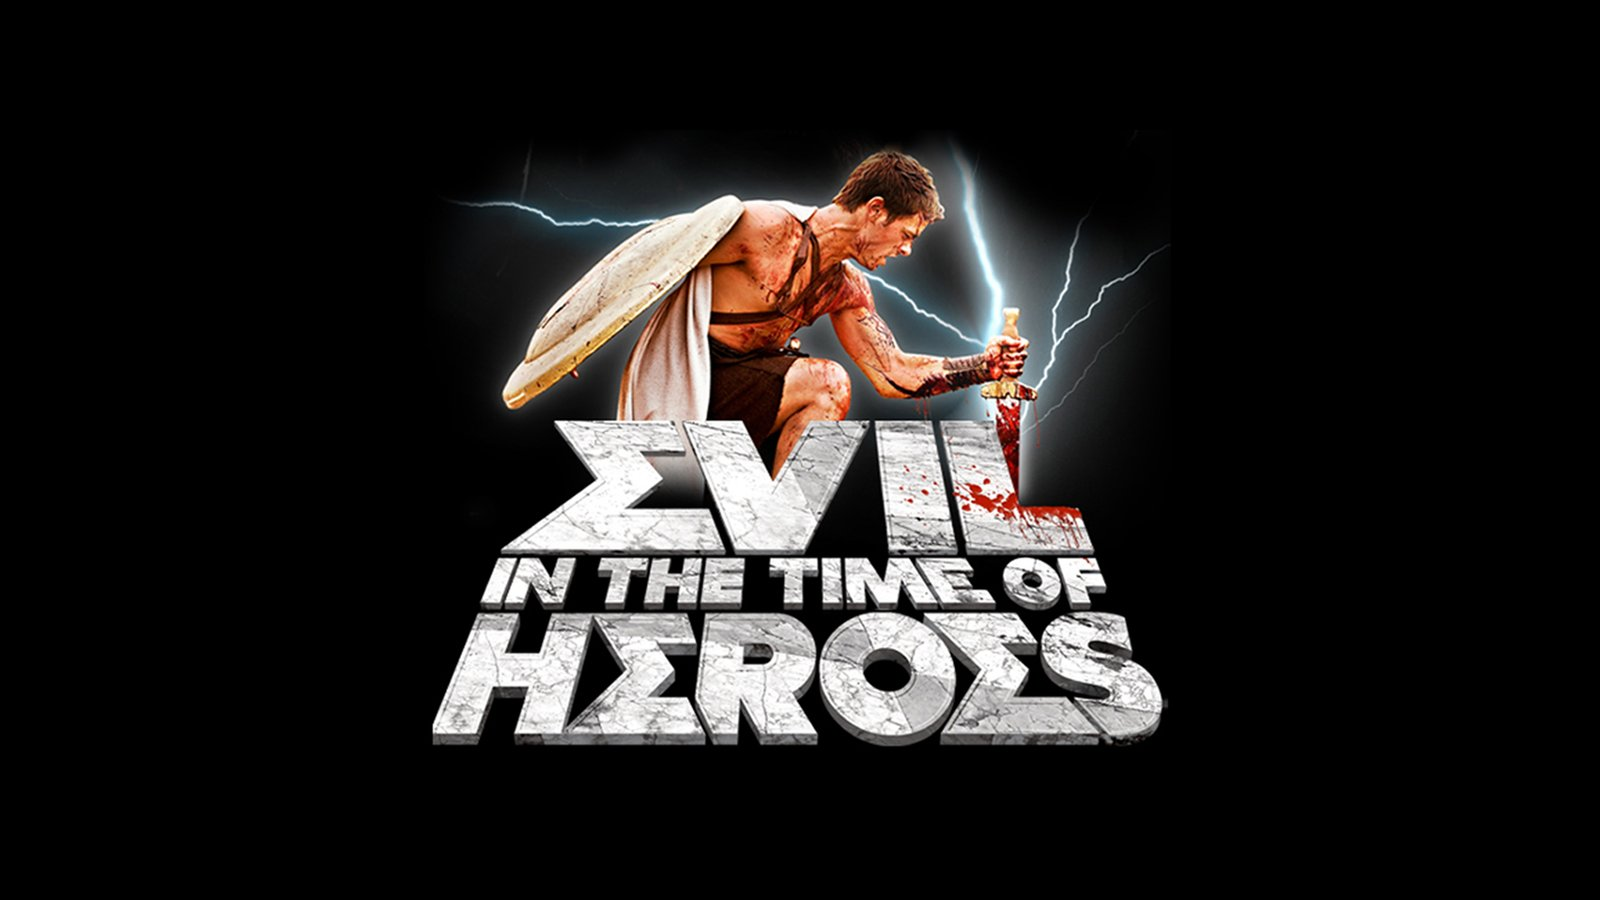 Evil: In the Time of Heroes